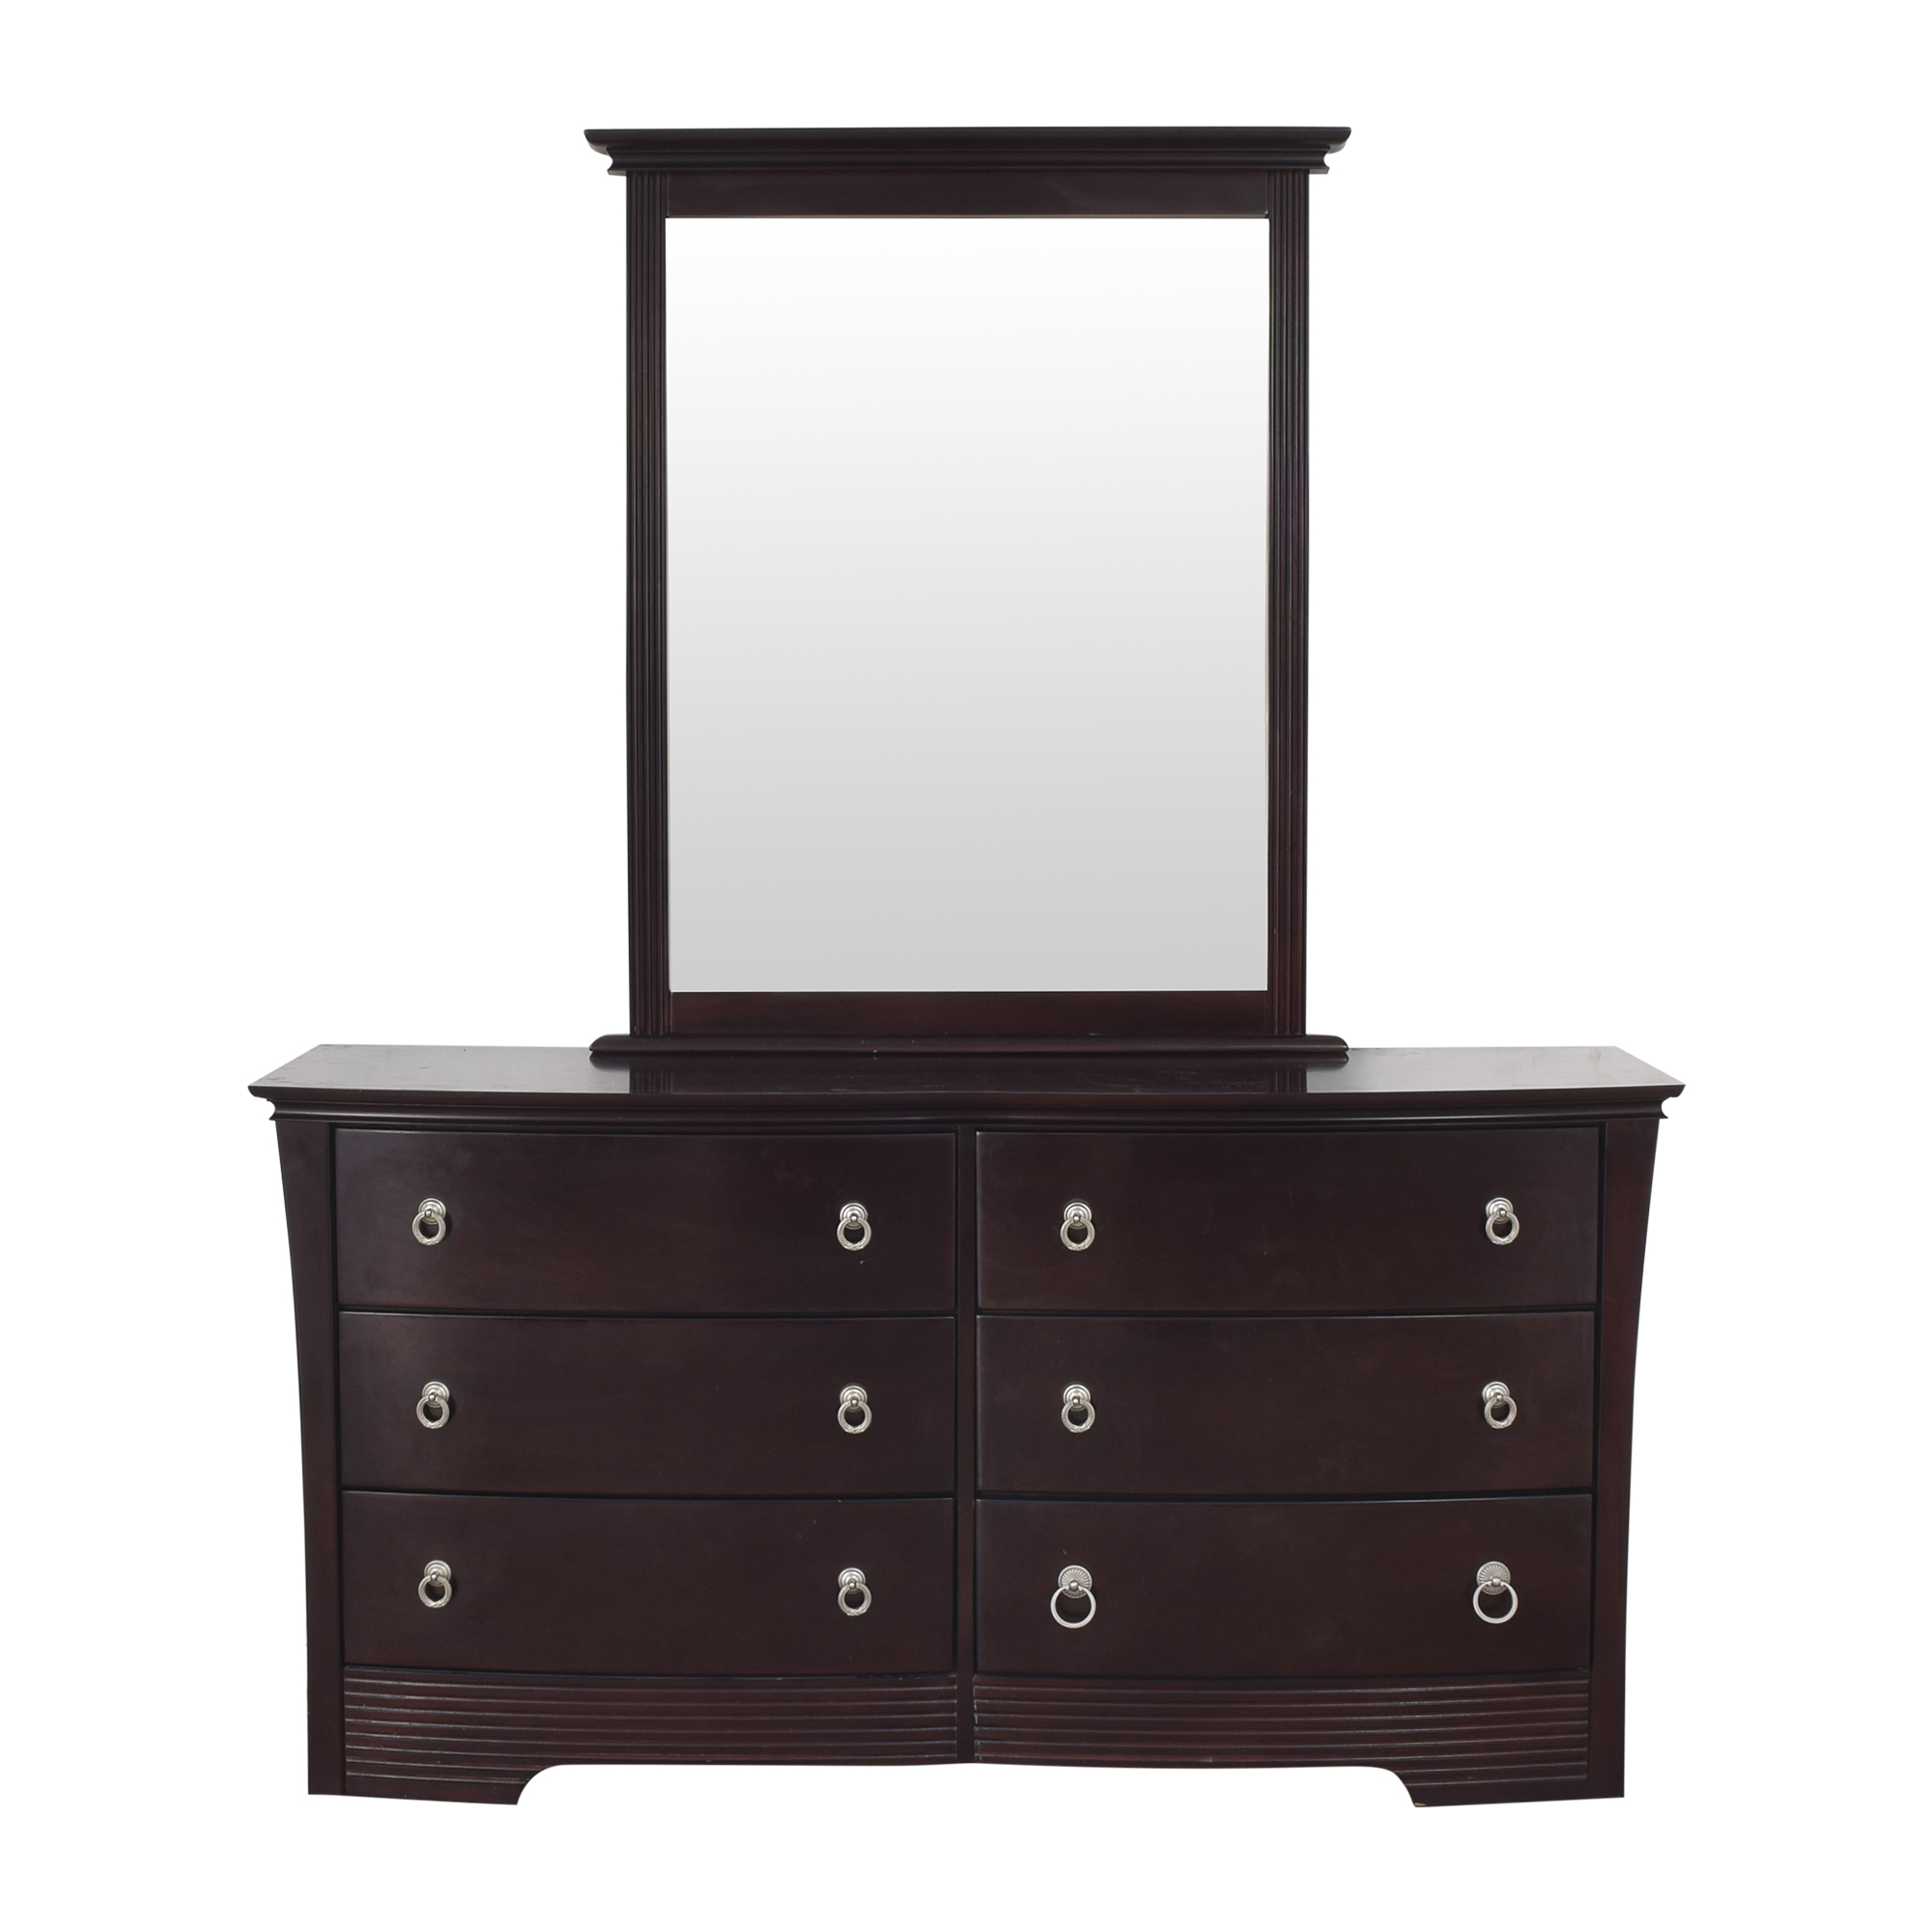 Six Drawer Double Dresser with Mirror  dimensions